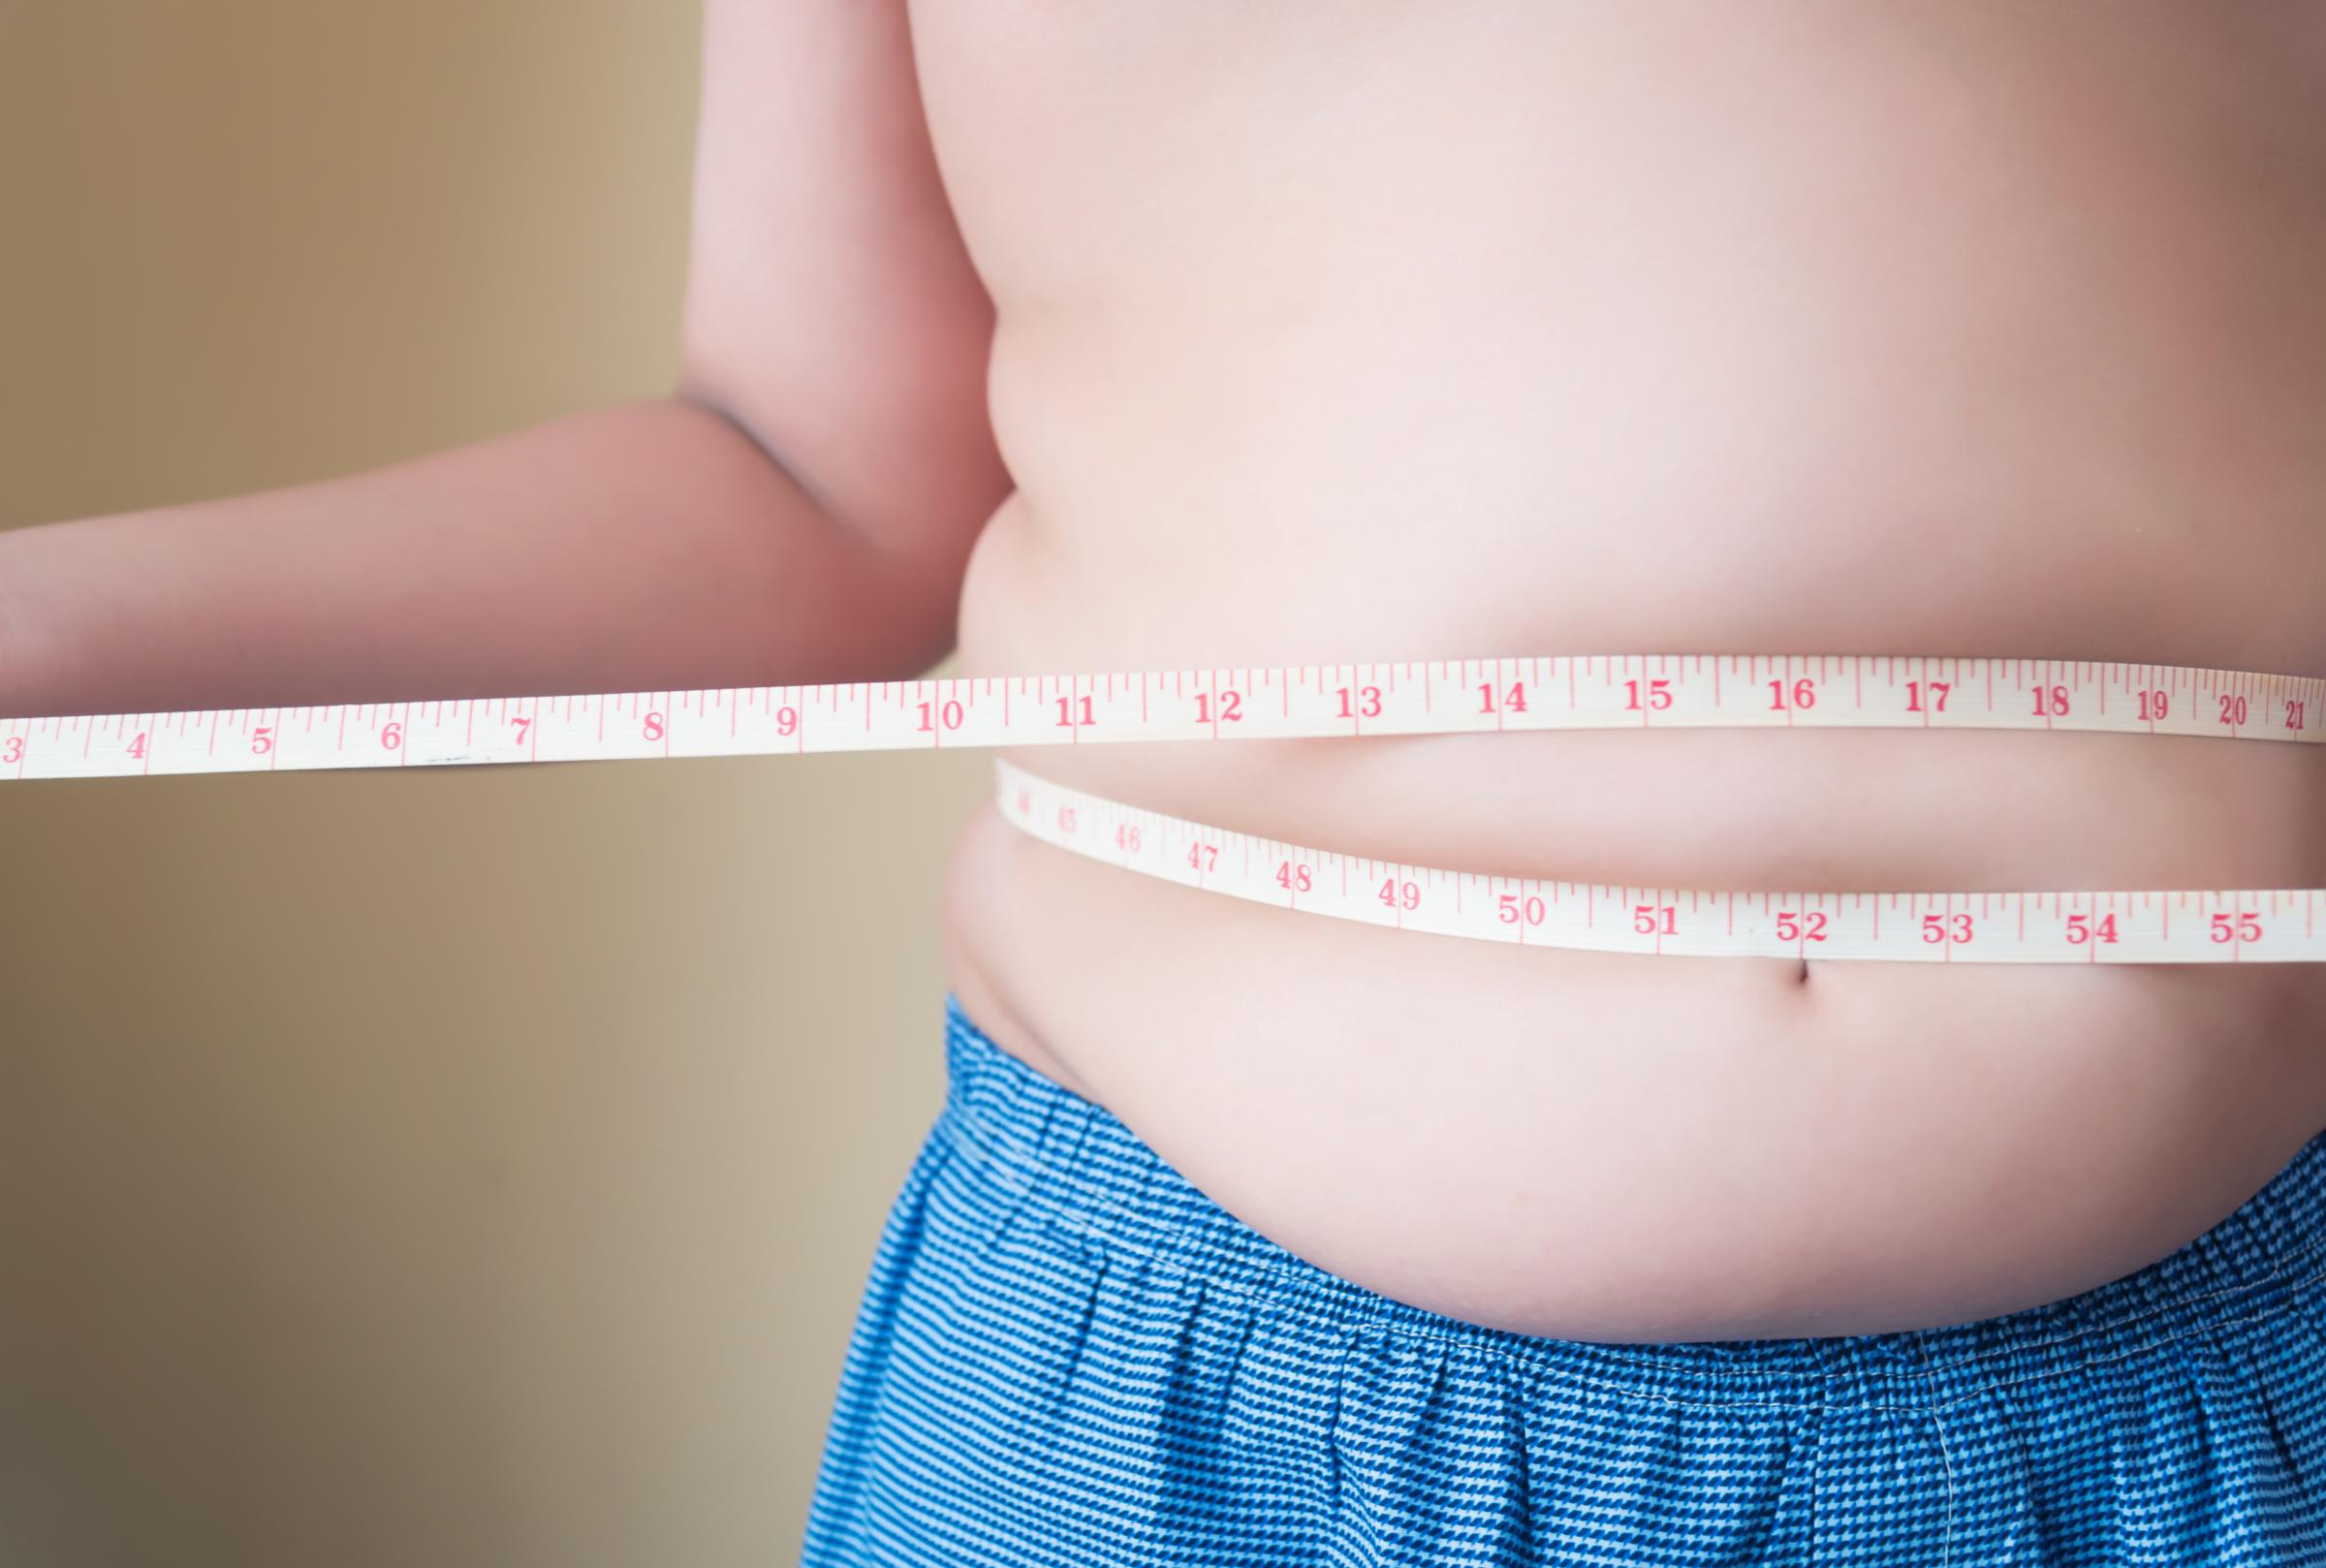 Ultra processed food: There is a simple reason why children are getting fat, by Joanna Blythman